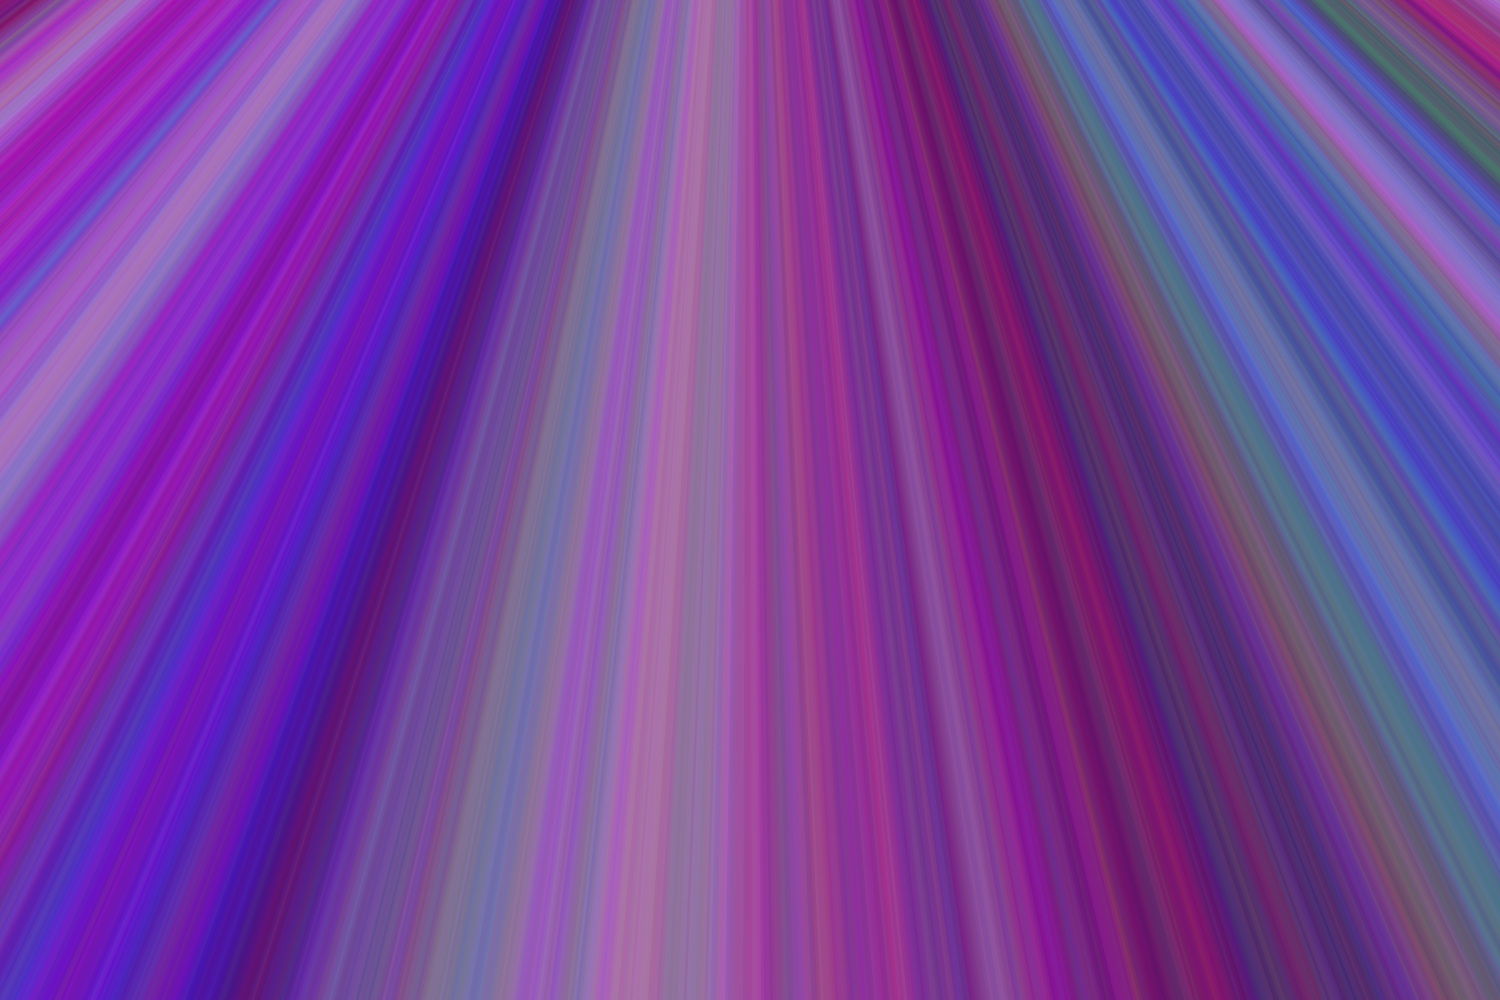 10 Color Backgrounds (AI, EPS, JPG 5000x5000) example image 9